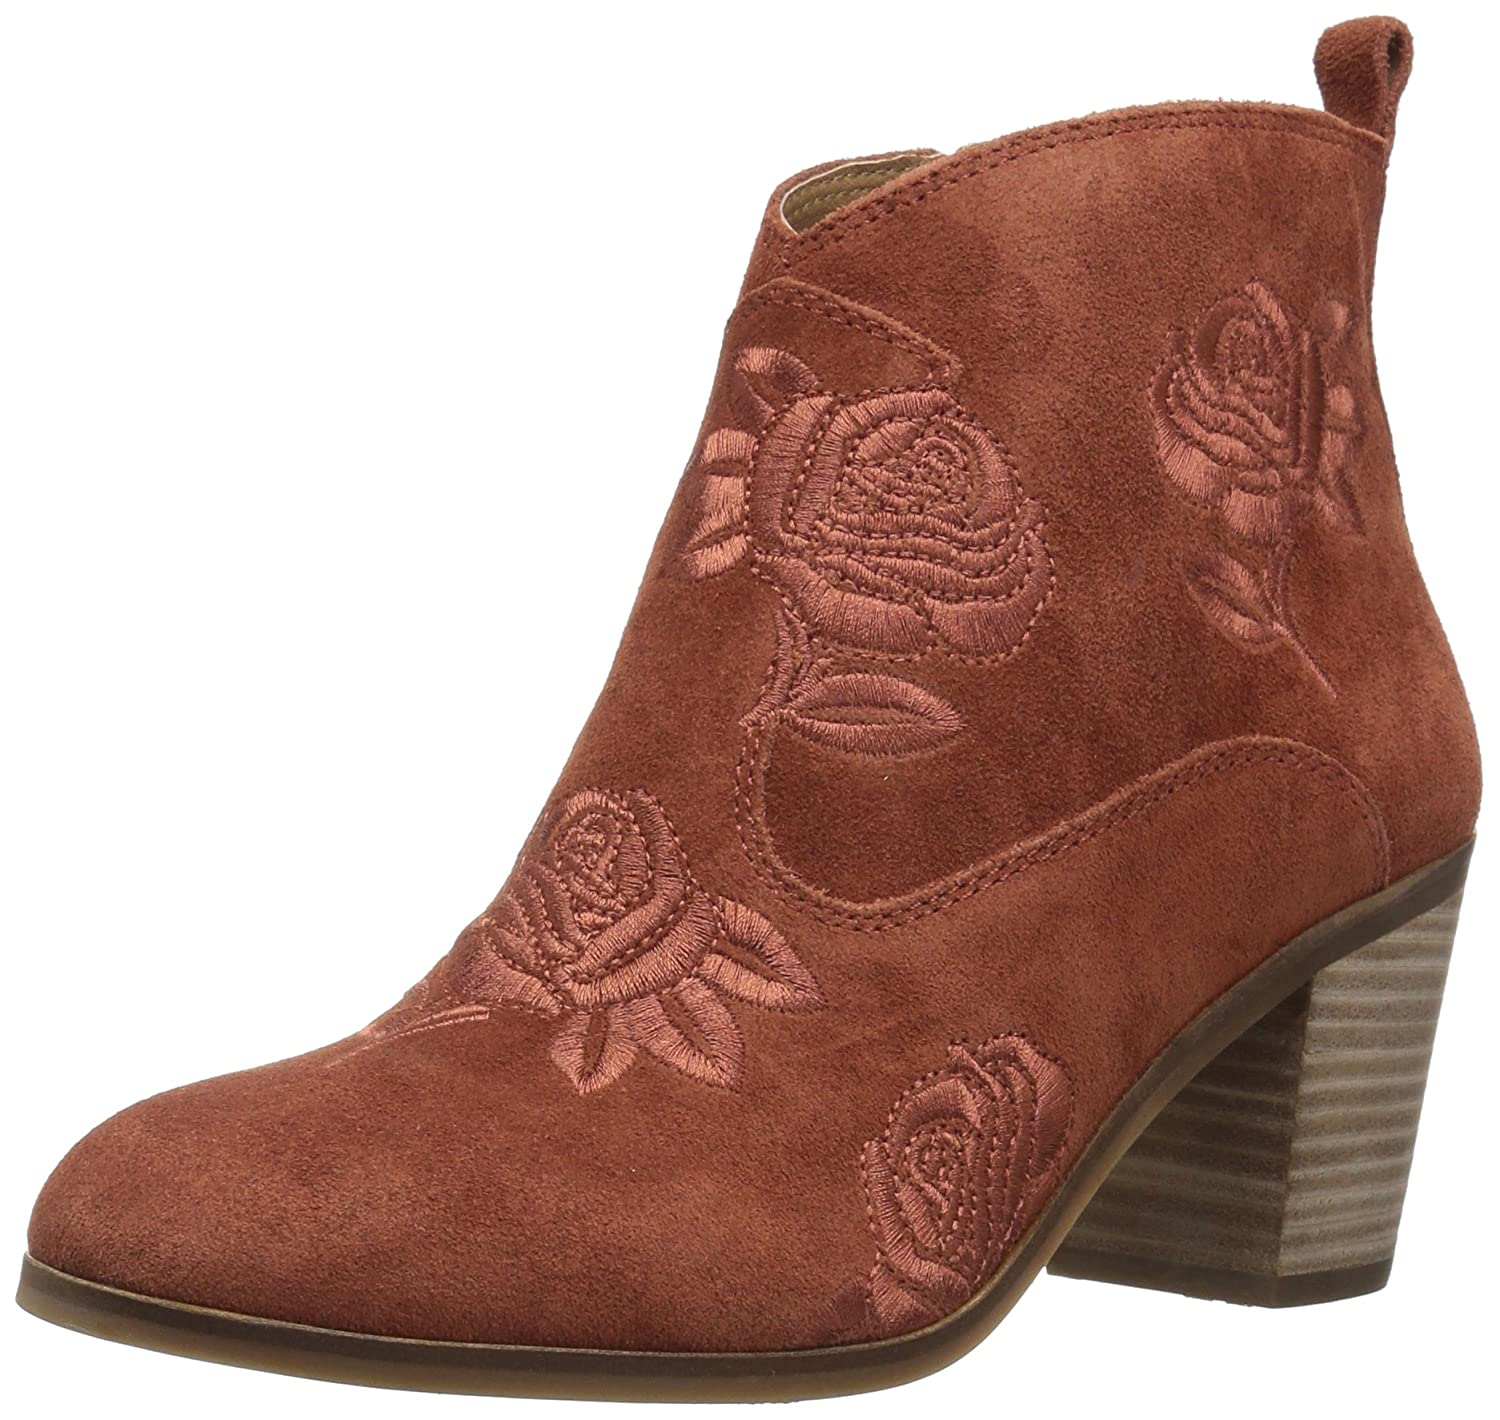 Lucky Brand Women's Pexton Ankle Boot B07FN2WTFQ 12 B(M) US|Red Oak